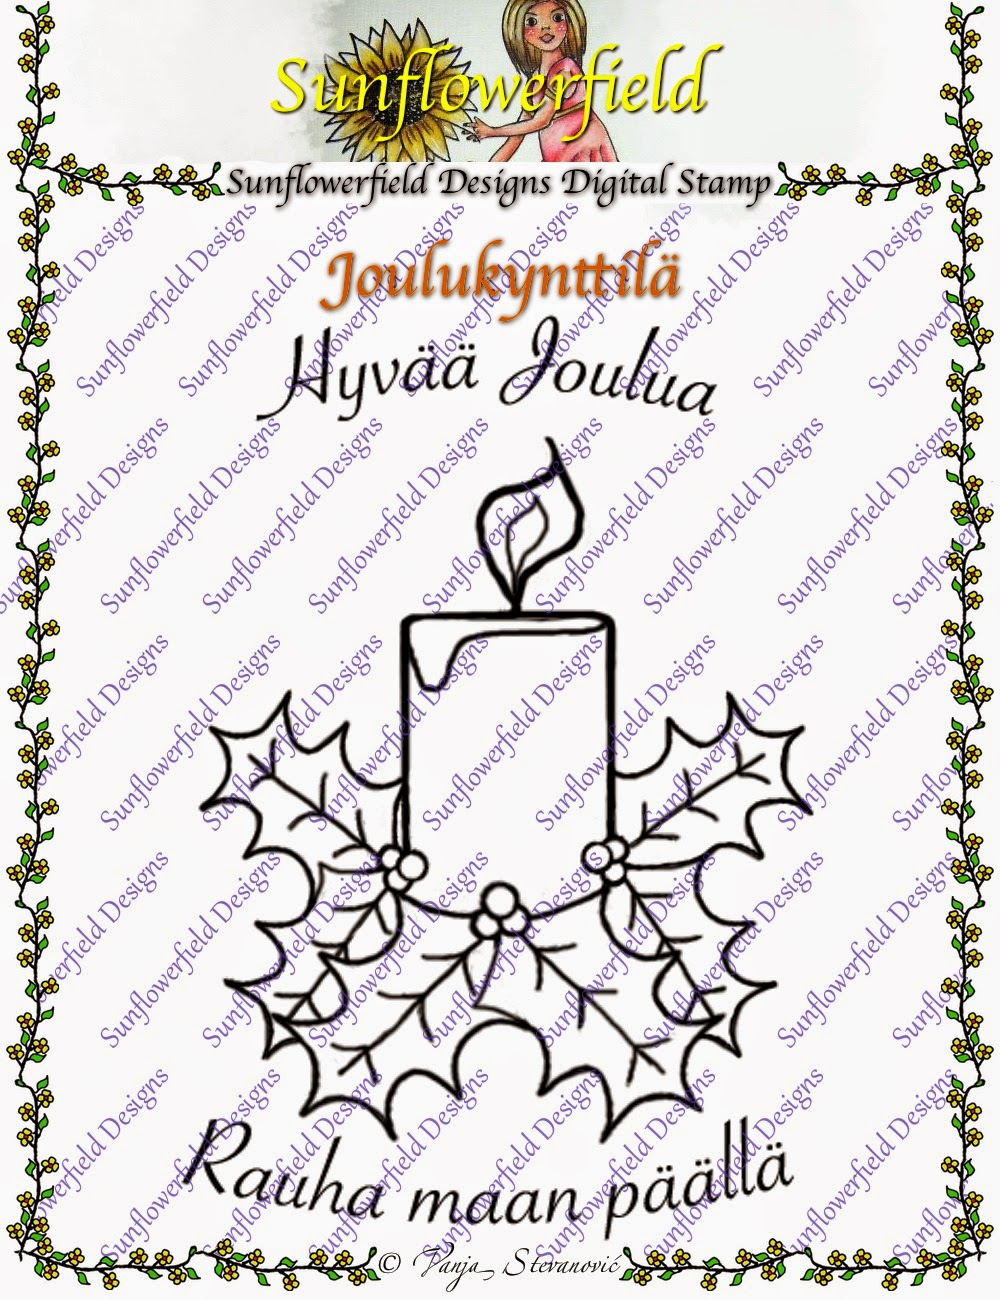 http://www.sunflowerfield.fi/new-joulukynttila-designed-vanja-stevanovi263-for-sunflowerfield-designs-p-1052.html